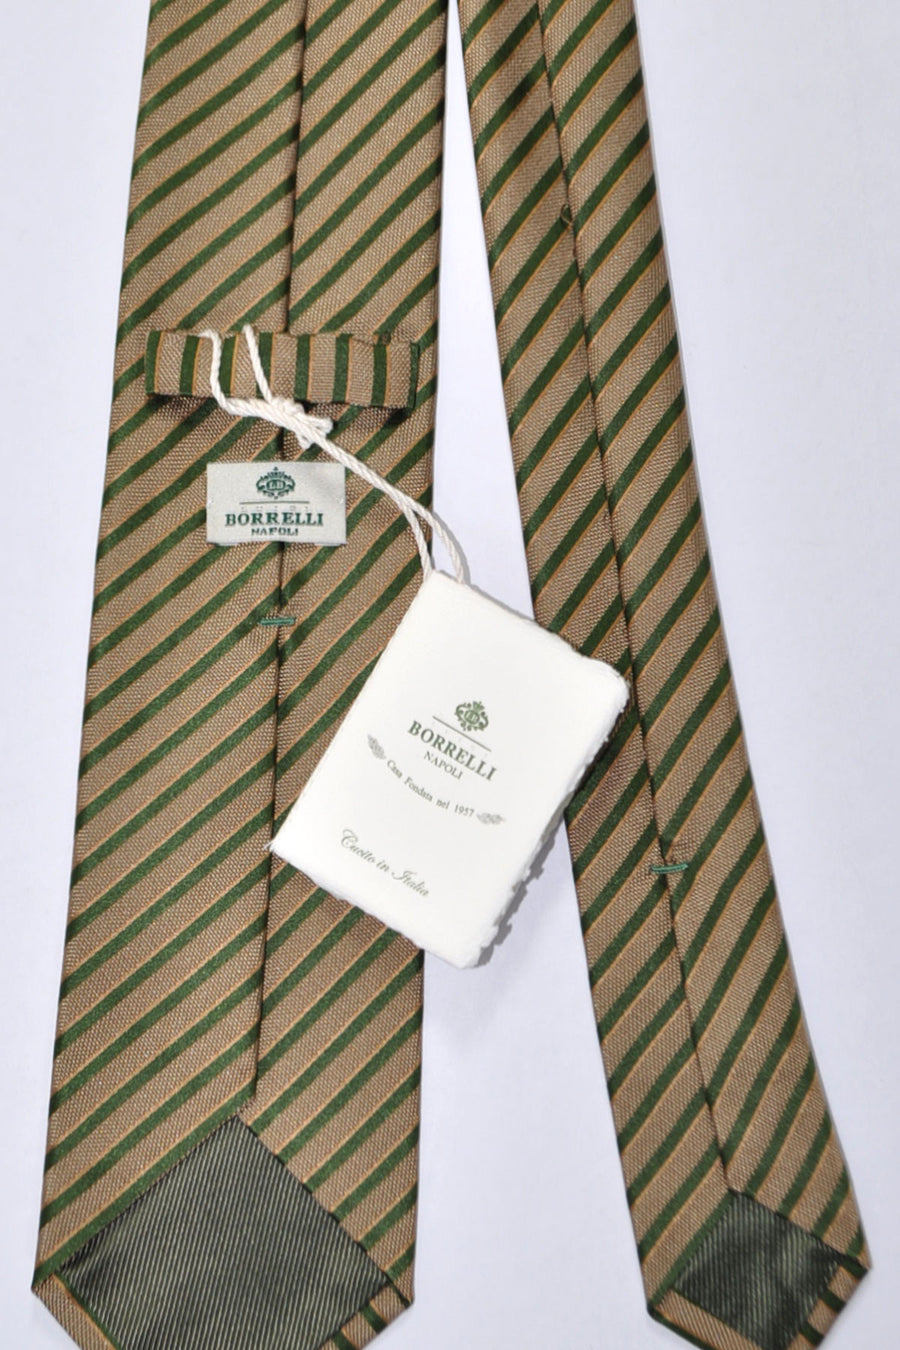 Luigi Borrelli Tie Green Light Brown Stripes